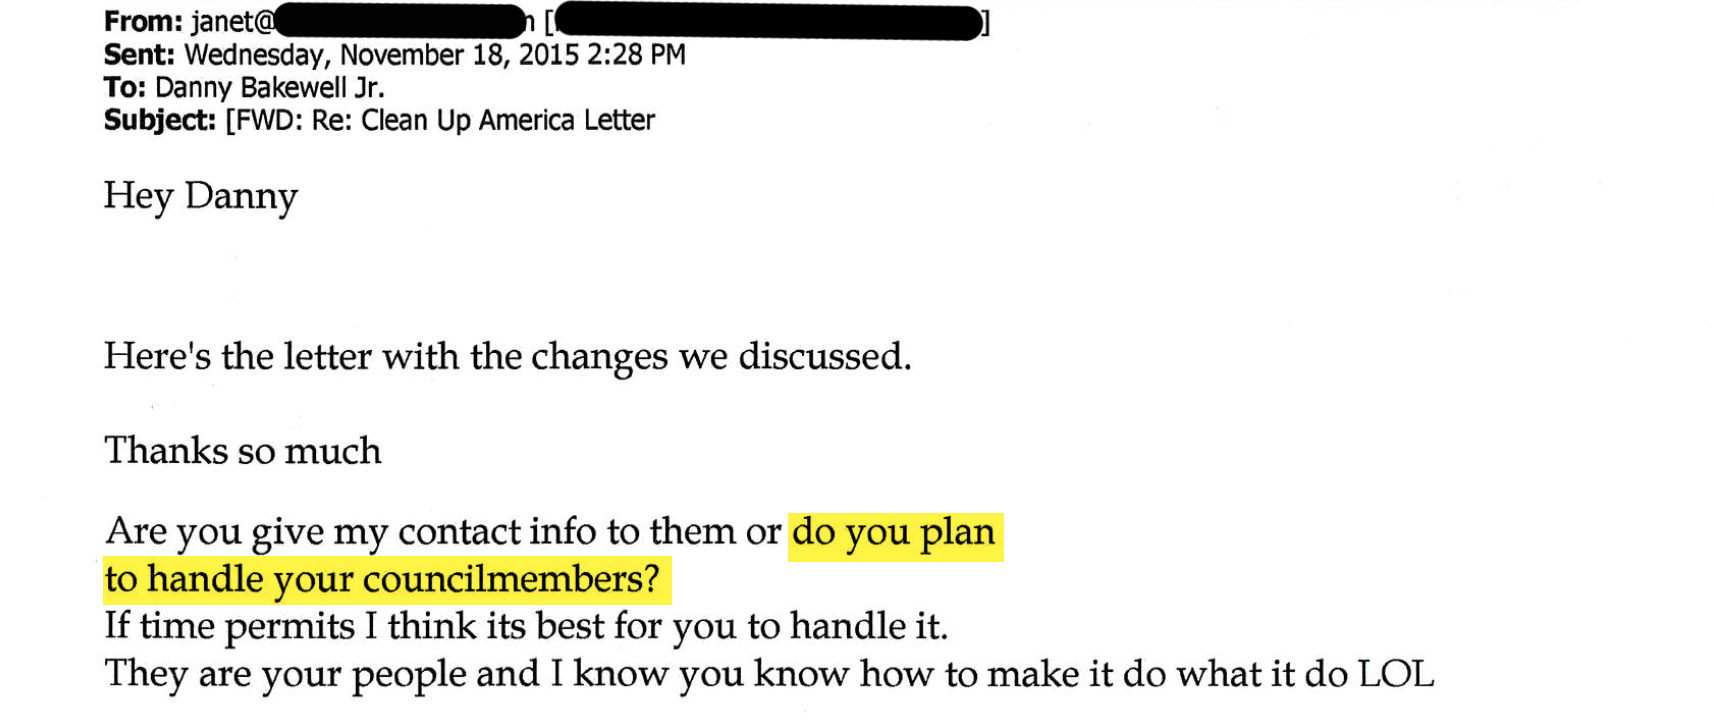 Screengrab of Clean Up America staff email to Danny Bakewell